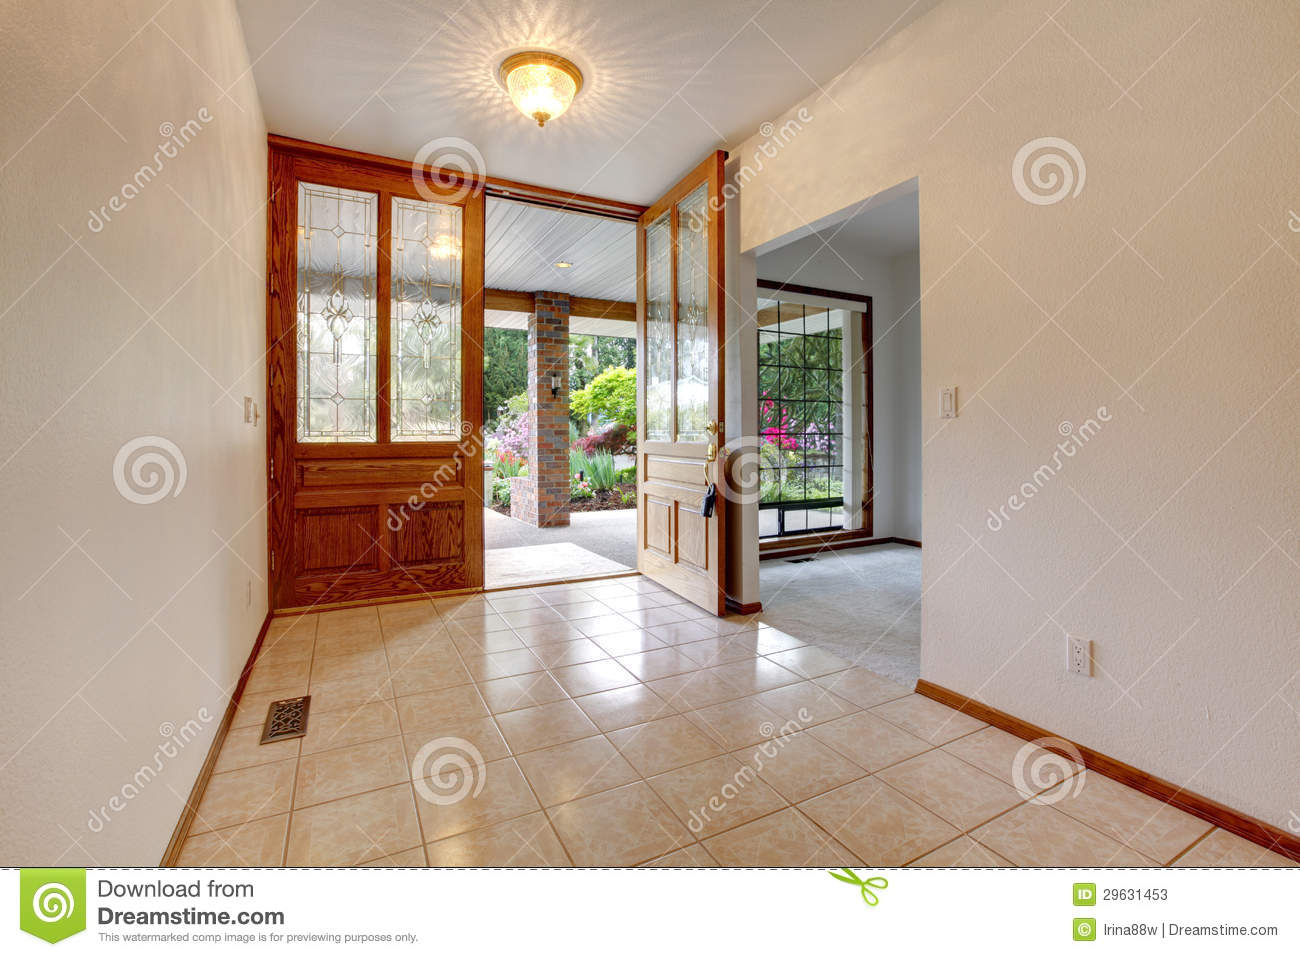 Empty front entrance with open door home interior stock for Porte maison interieur moderne